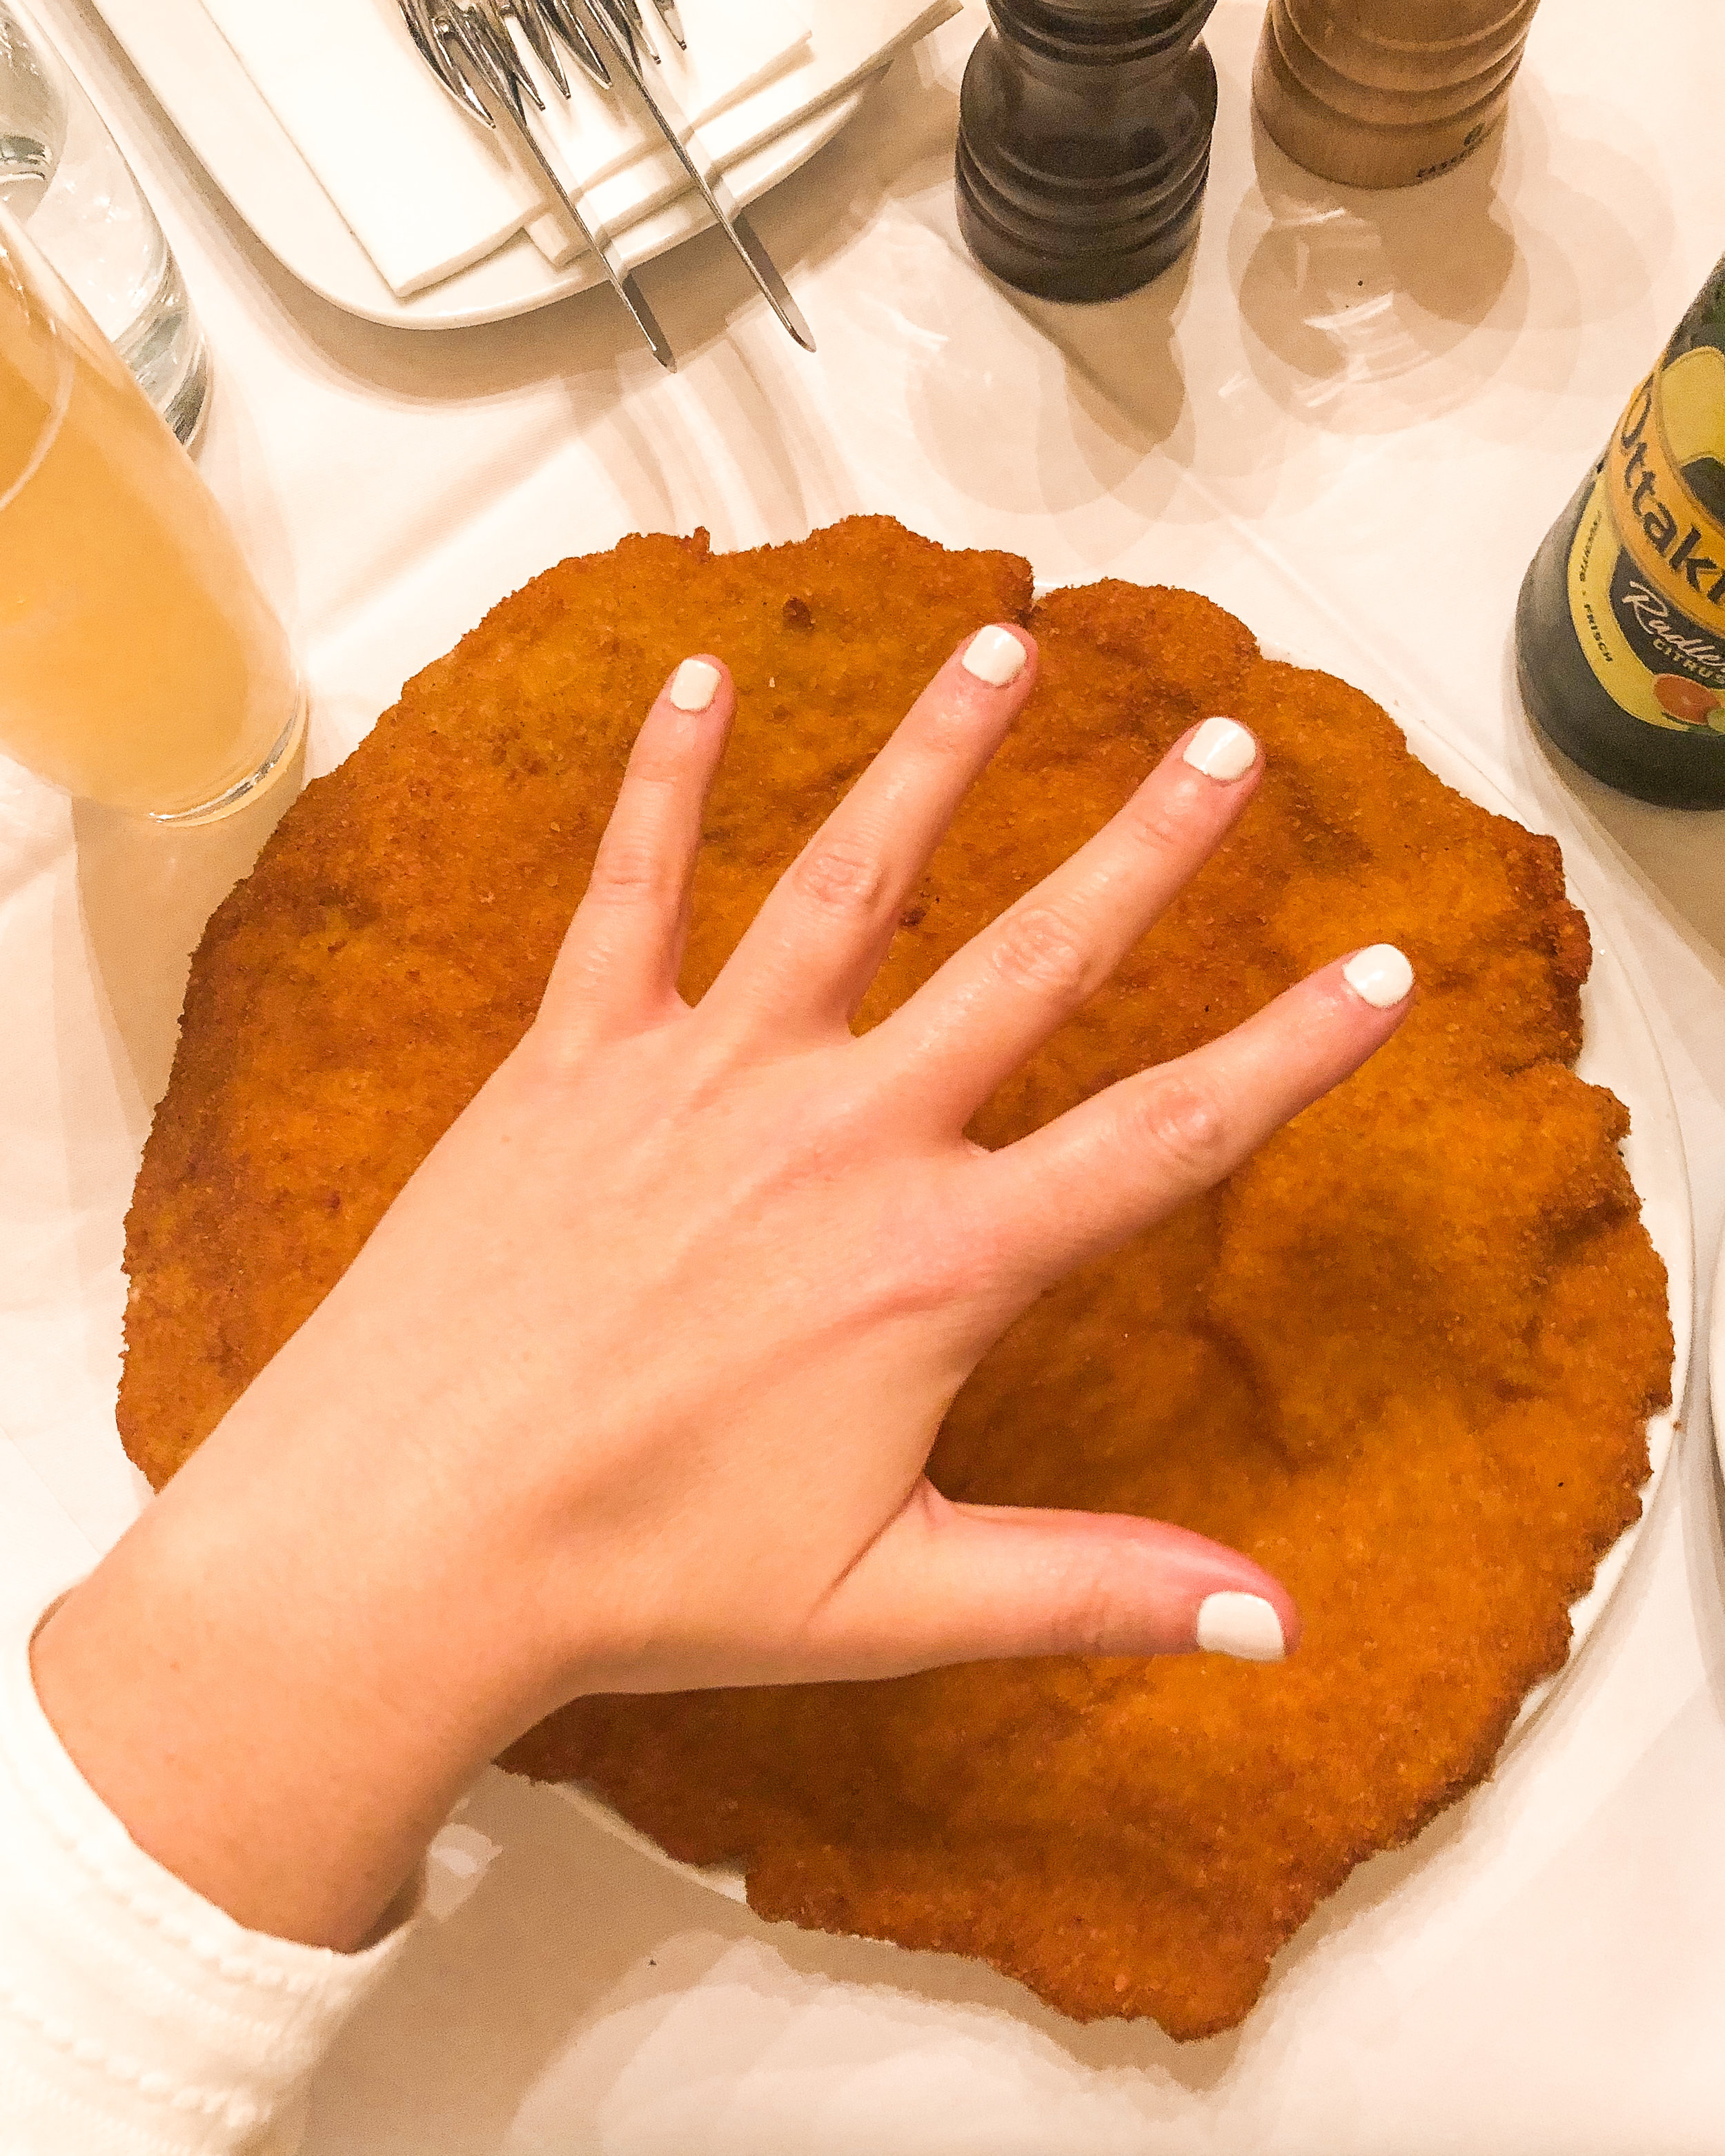 This schnitzel is bigger than my stretched out hand!